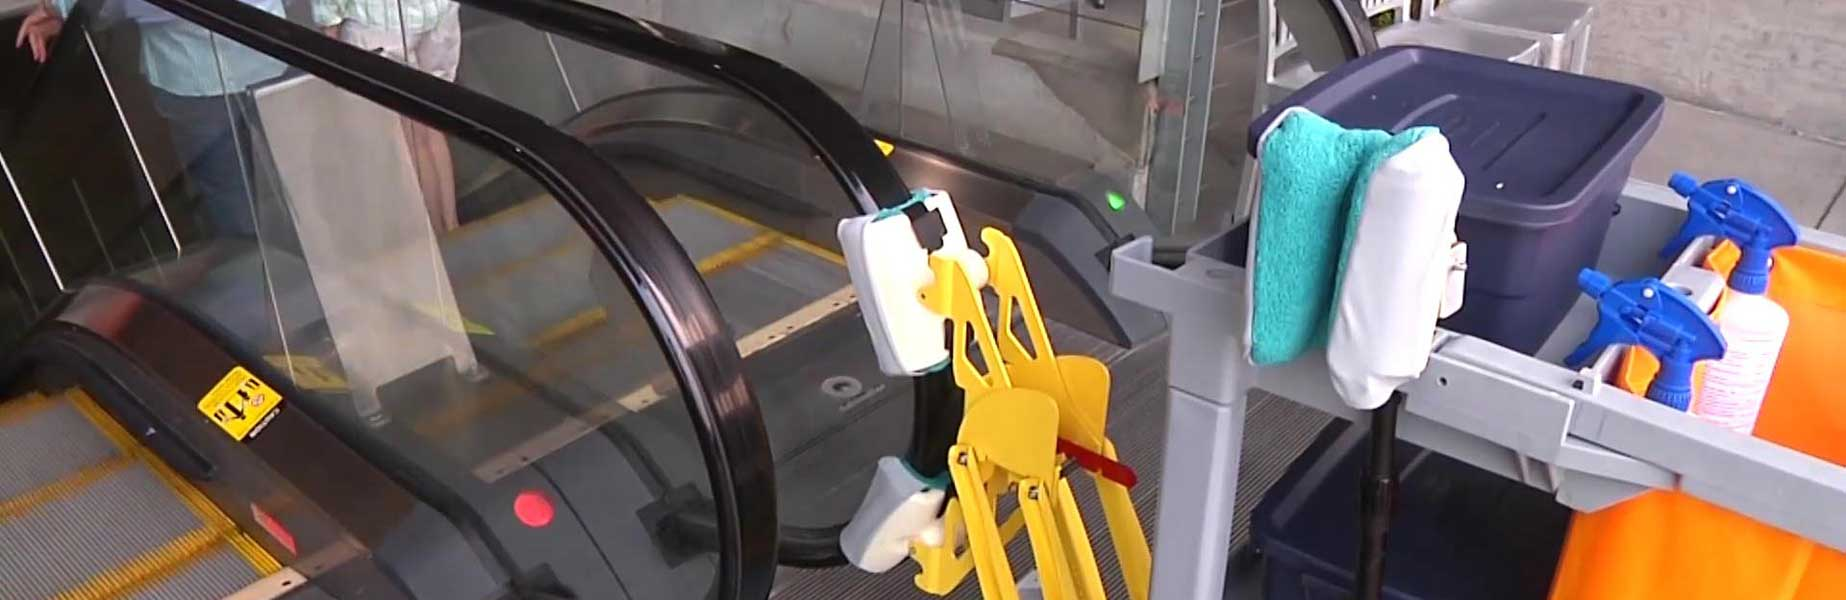 Touch me I'm Clean! handrail cleaning machine